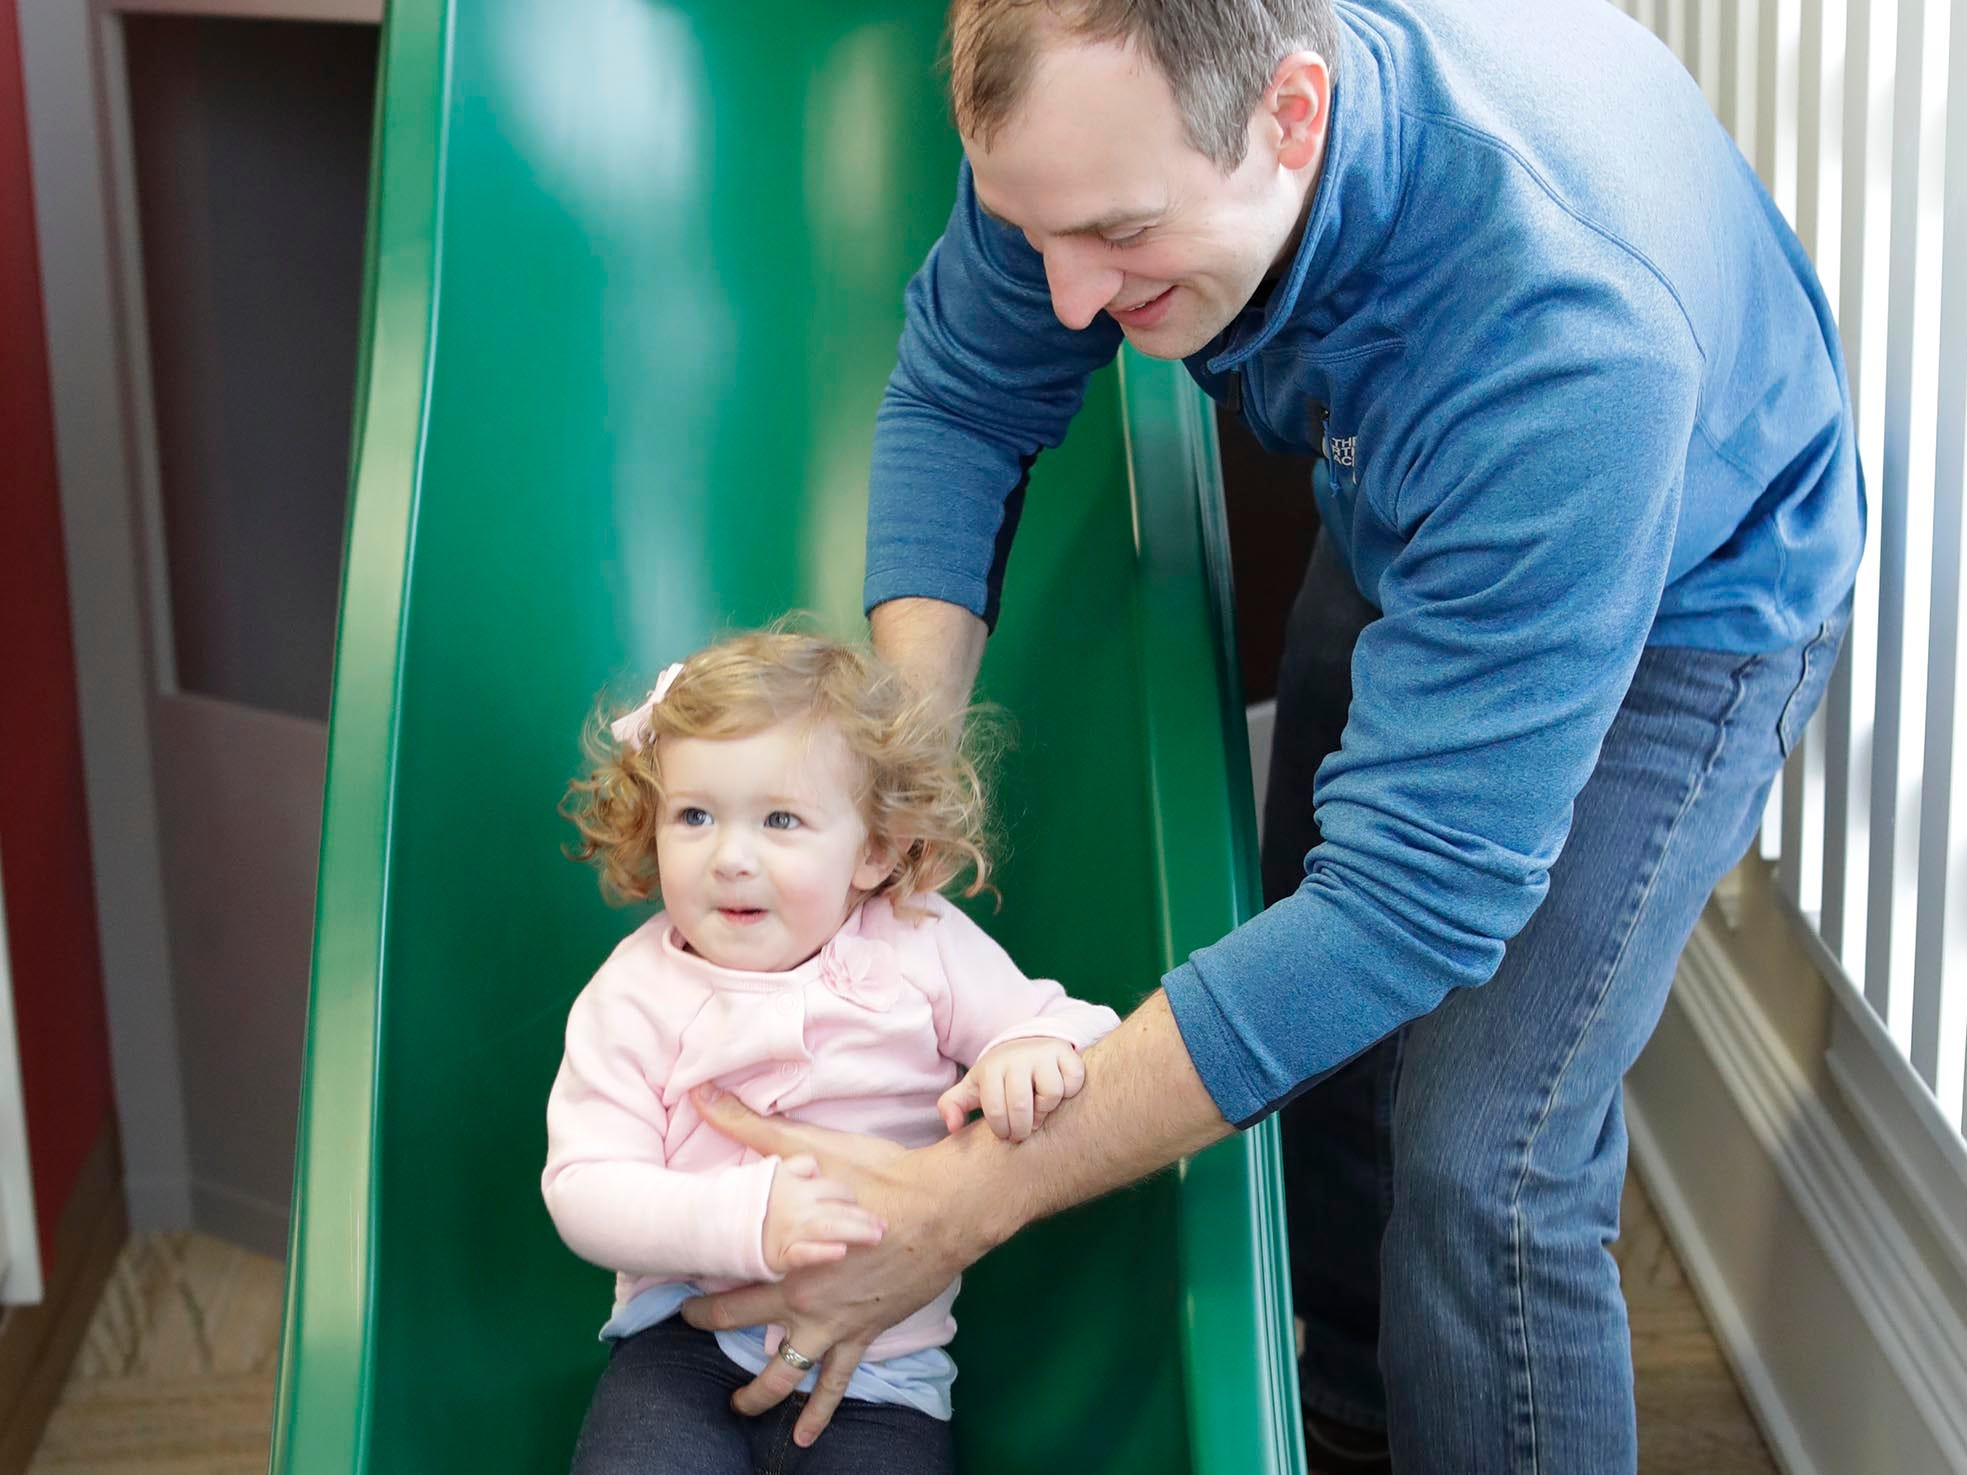 Siena Hesselink, 1, slides down a small slide with her dad Eric at her side at the Above and Beyond Children's Museum, Saturday, February 23, 2019, in Sheboygan, Wis. The Museum opened the Toddler Barnyard this weekend.